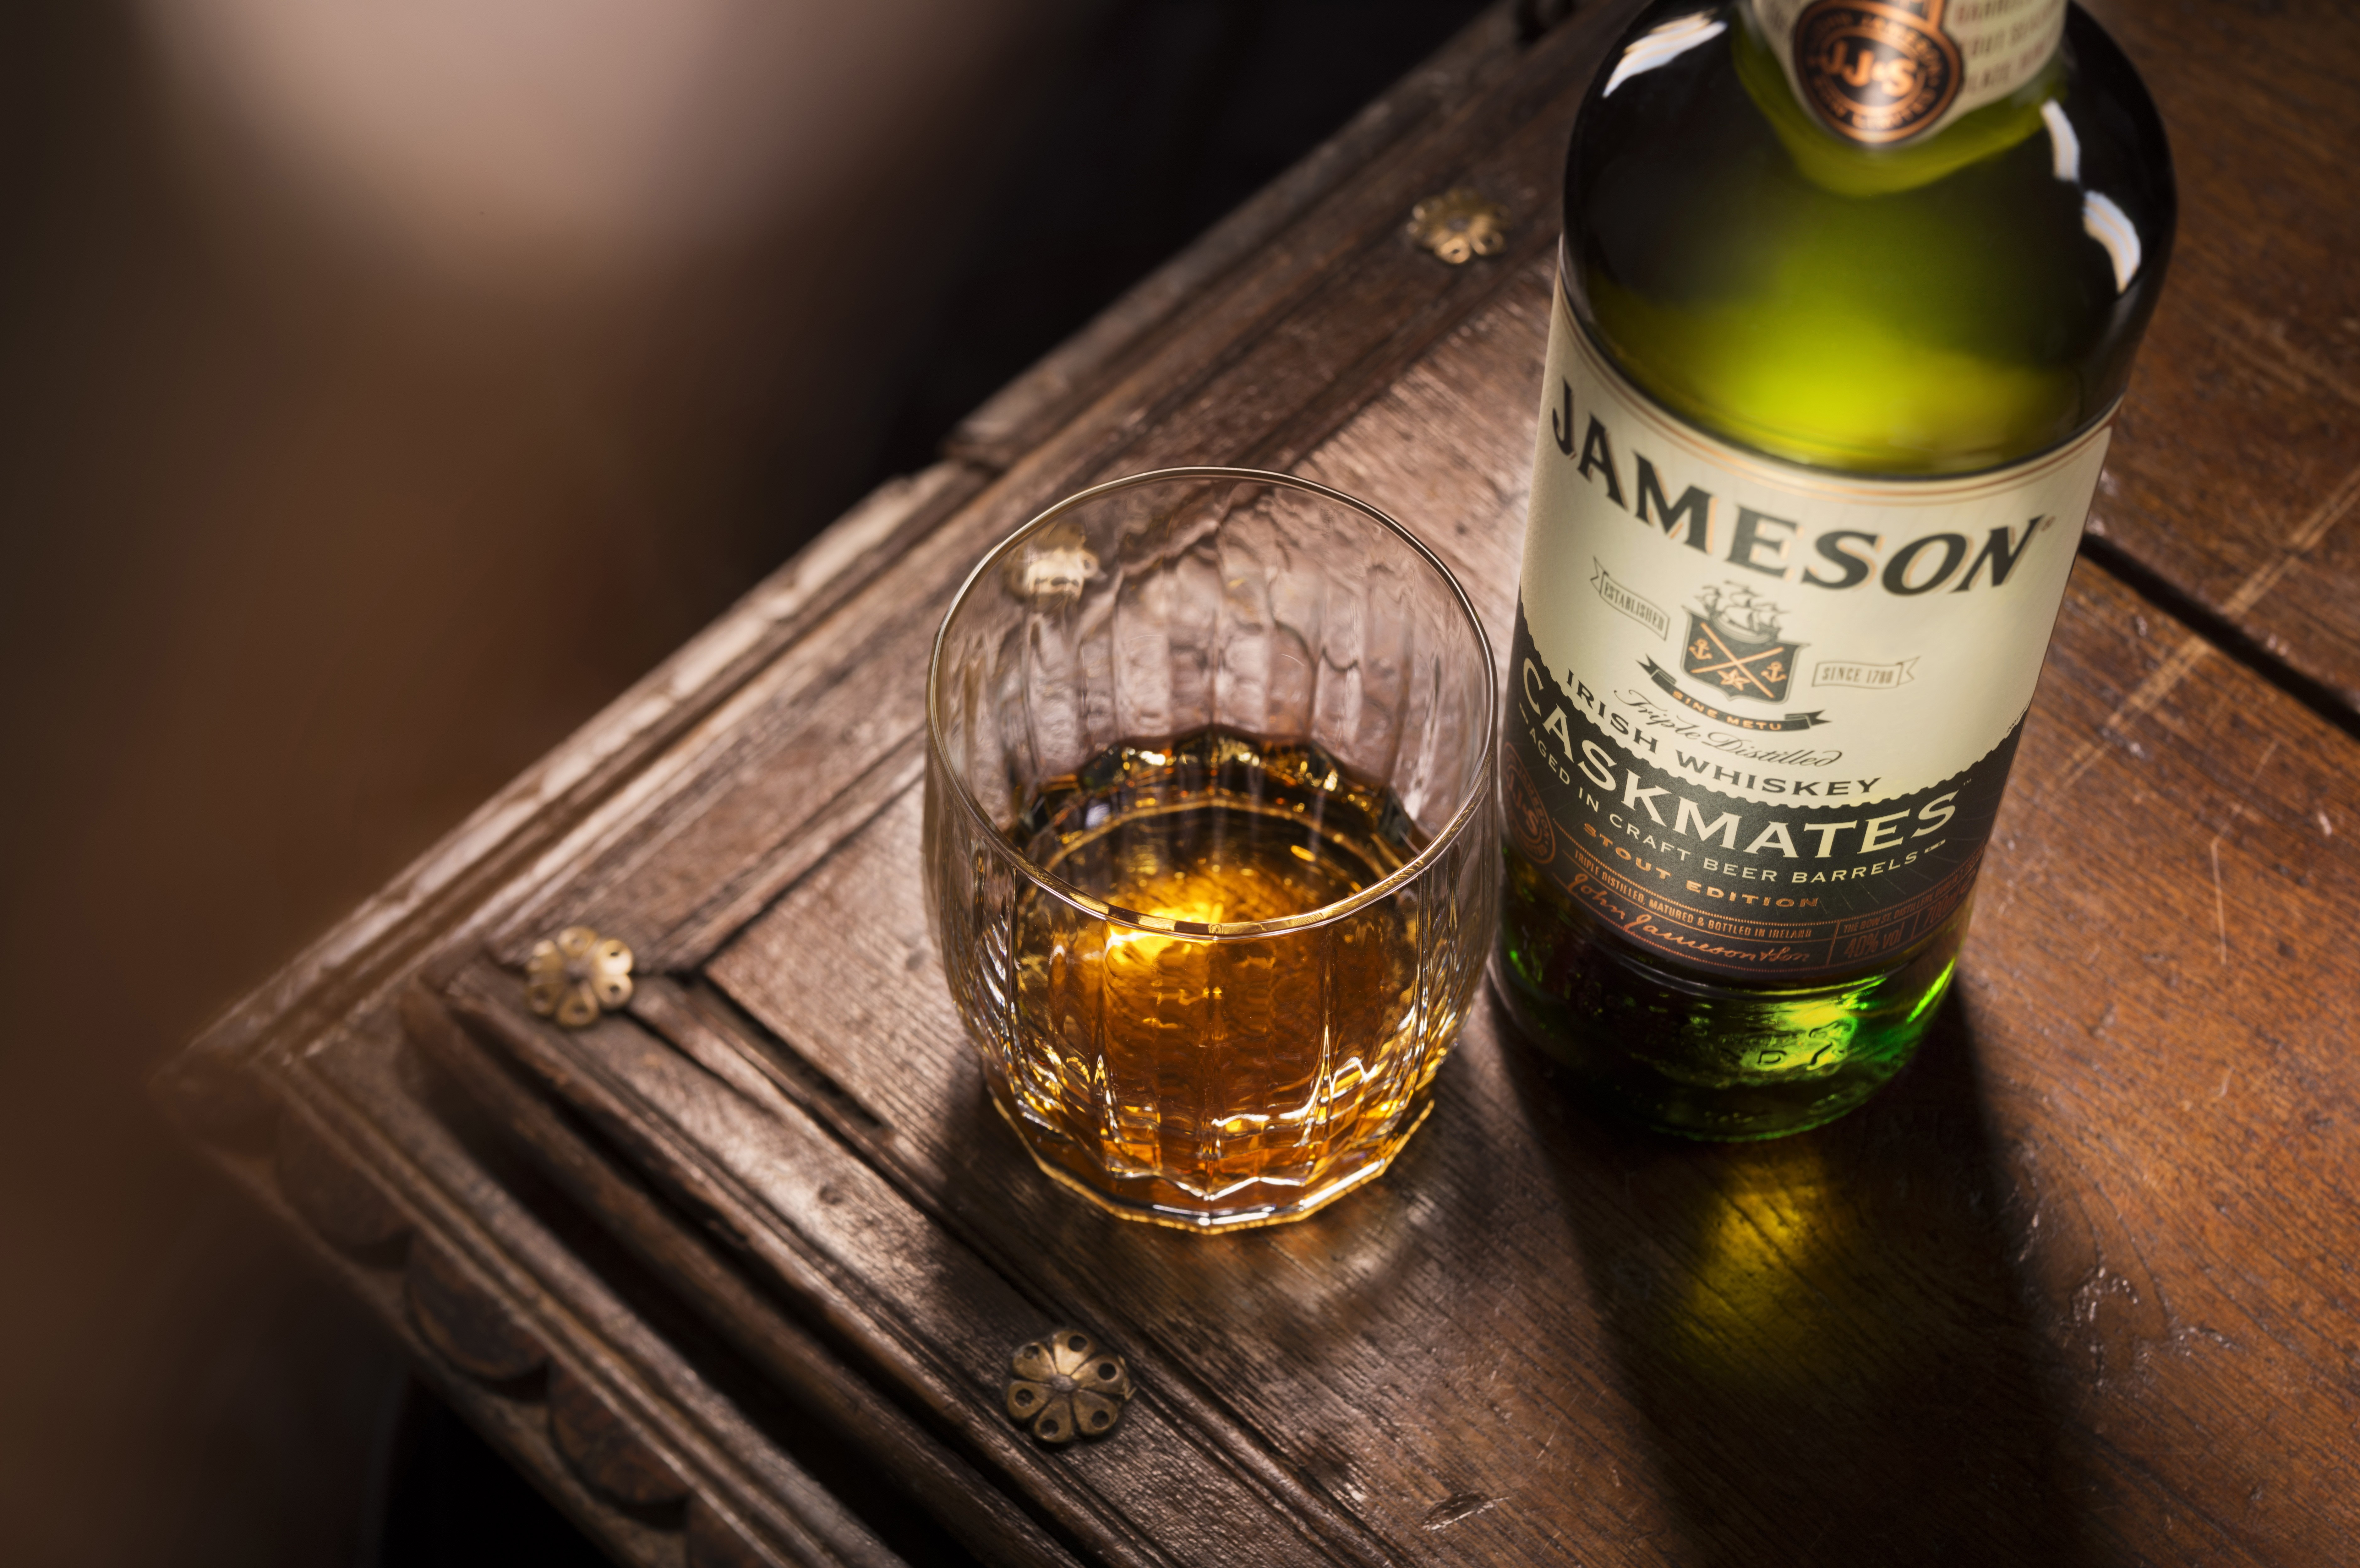 Jameson Caskmates, a new Irish whiskey by Pernod Ricard, has gone national in the U.S.